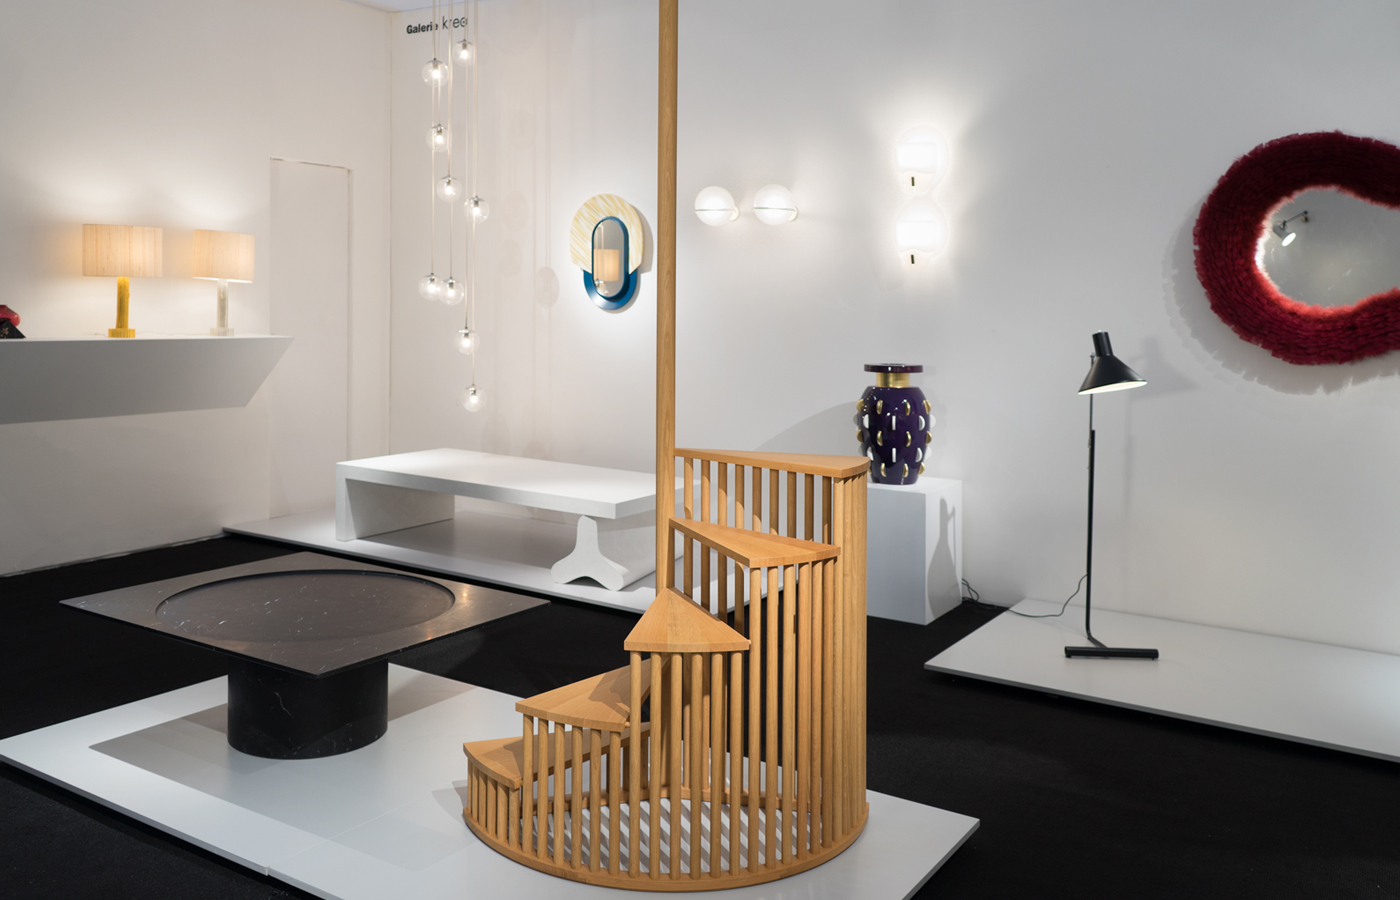 New Collectible Designs at The Salon Art+Design NY 2018 galerie kreo New Galerie kreo's Collectible Designs at The Salon Art+Design NY 2018 Collectible Designs at The Salon ArtDesign NY 2018 Exhibition 2017